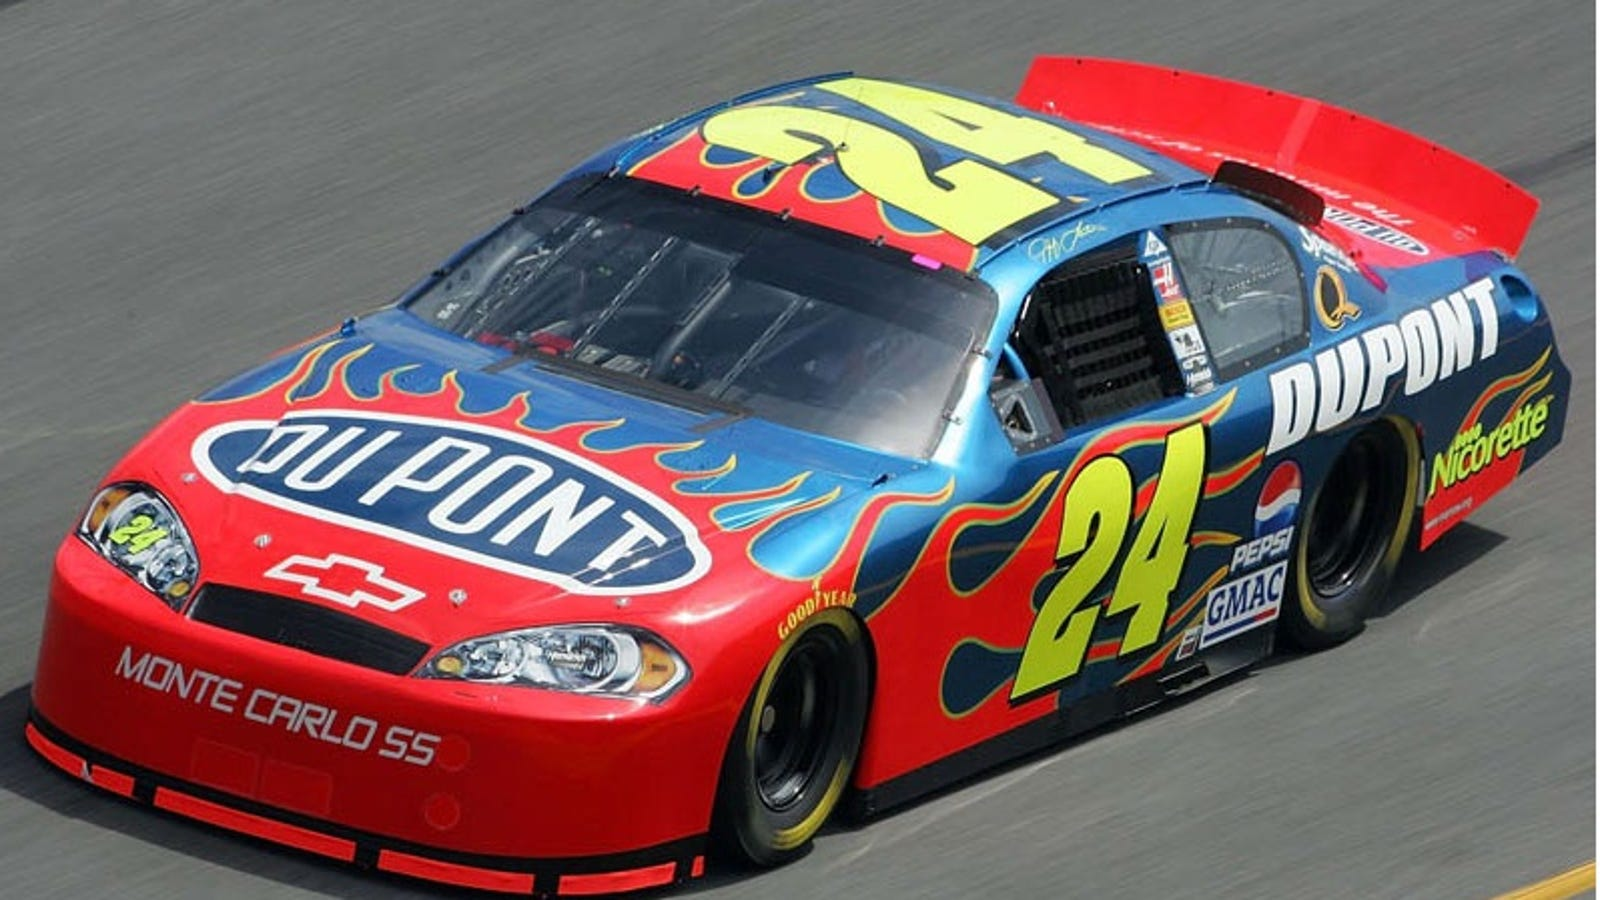 Jeff Gordon Nascar Jeff Gordon Car Jeff Gordon: Daytona 500 Live-Blog: Drive Quickly, Call Me Jeff Gordon